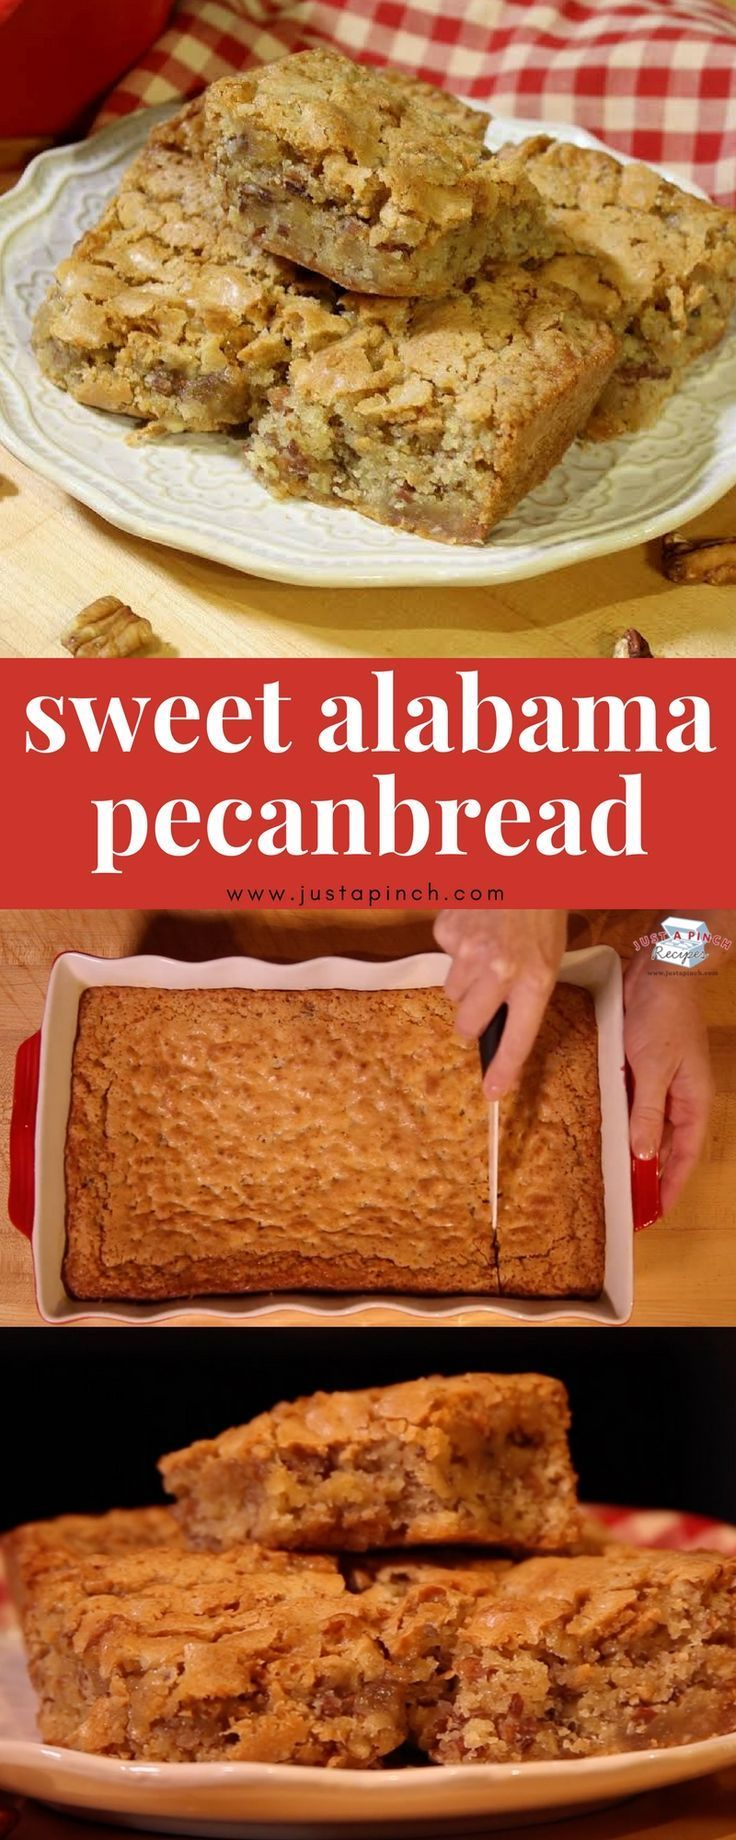 Sweet Alabama Pecanbread is a quick and easy recipe that's great for breakfast or dessert! #pecanbread #desserts #dessertrecipes #breakfast #breakfastrecipes #easyrecipe